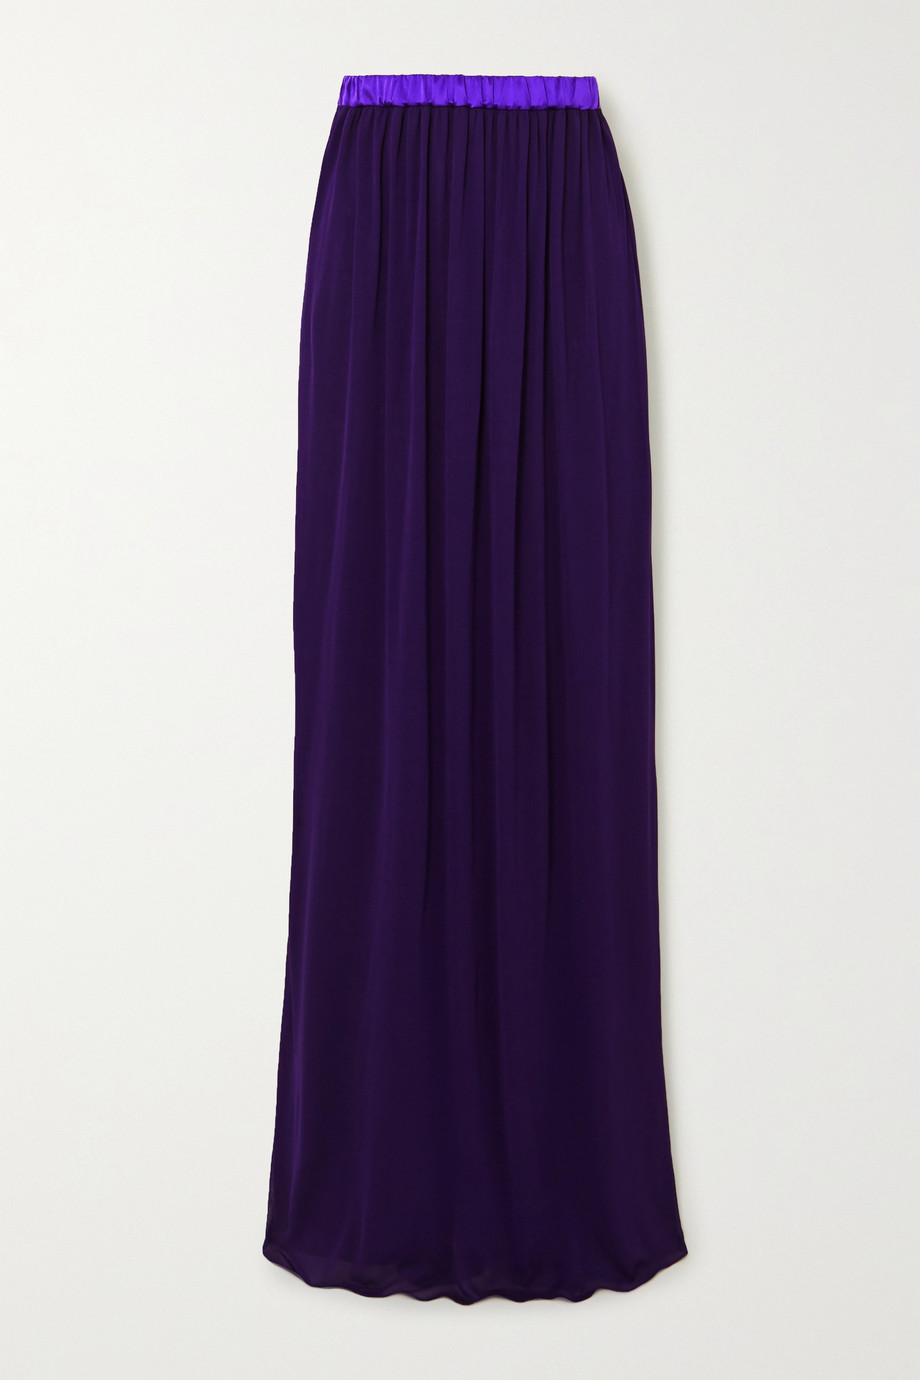 TOM FORD Gathered two-tone georgette maxi skirt